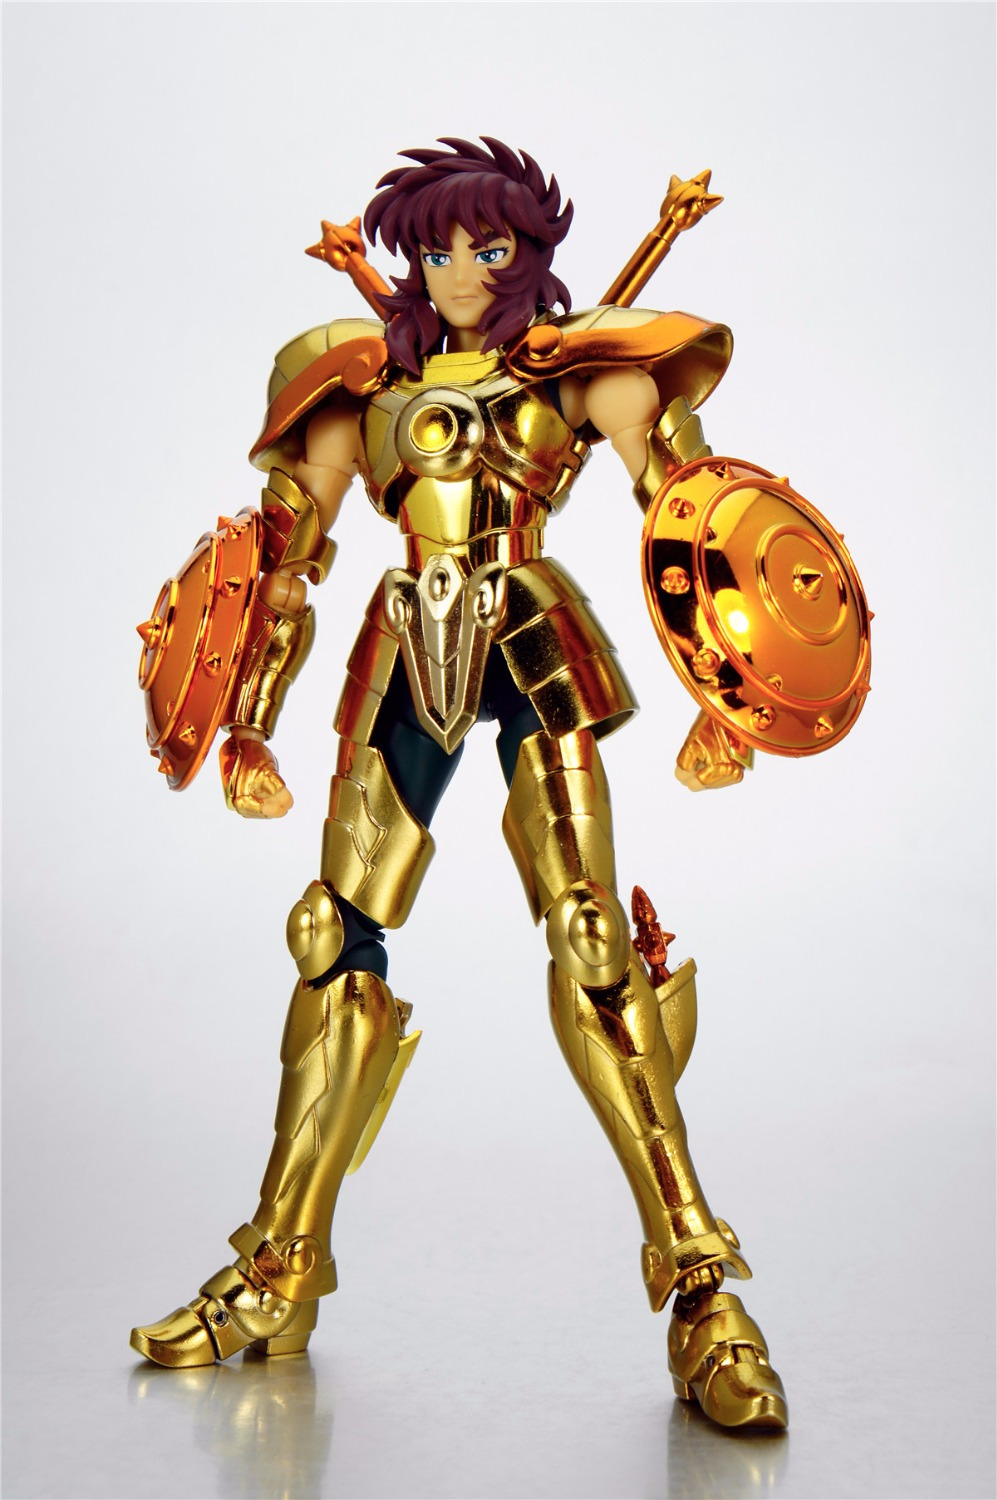 Speeding Model Libra Dohko action figure Saint Seiya Cloth Myth EX 2.0 metal armor CS Aurora model toy S13 taoffen women stiletto high heel shoes pointed toe spring sweet footwear lady spring heeled pumps heels shoes size 34 47 p17515 page 3